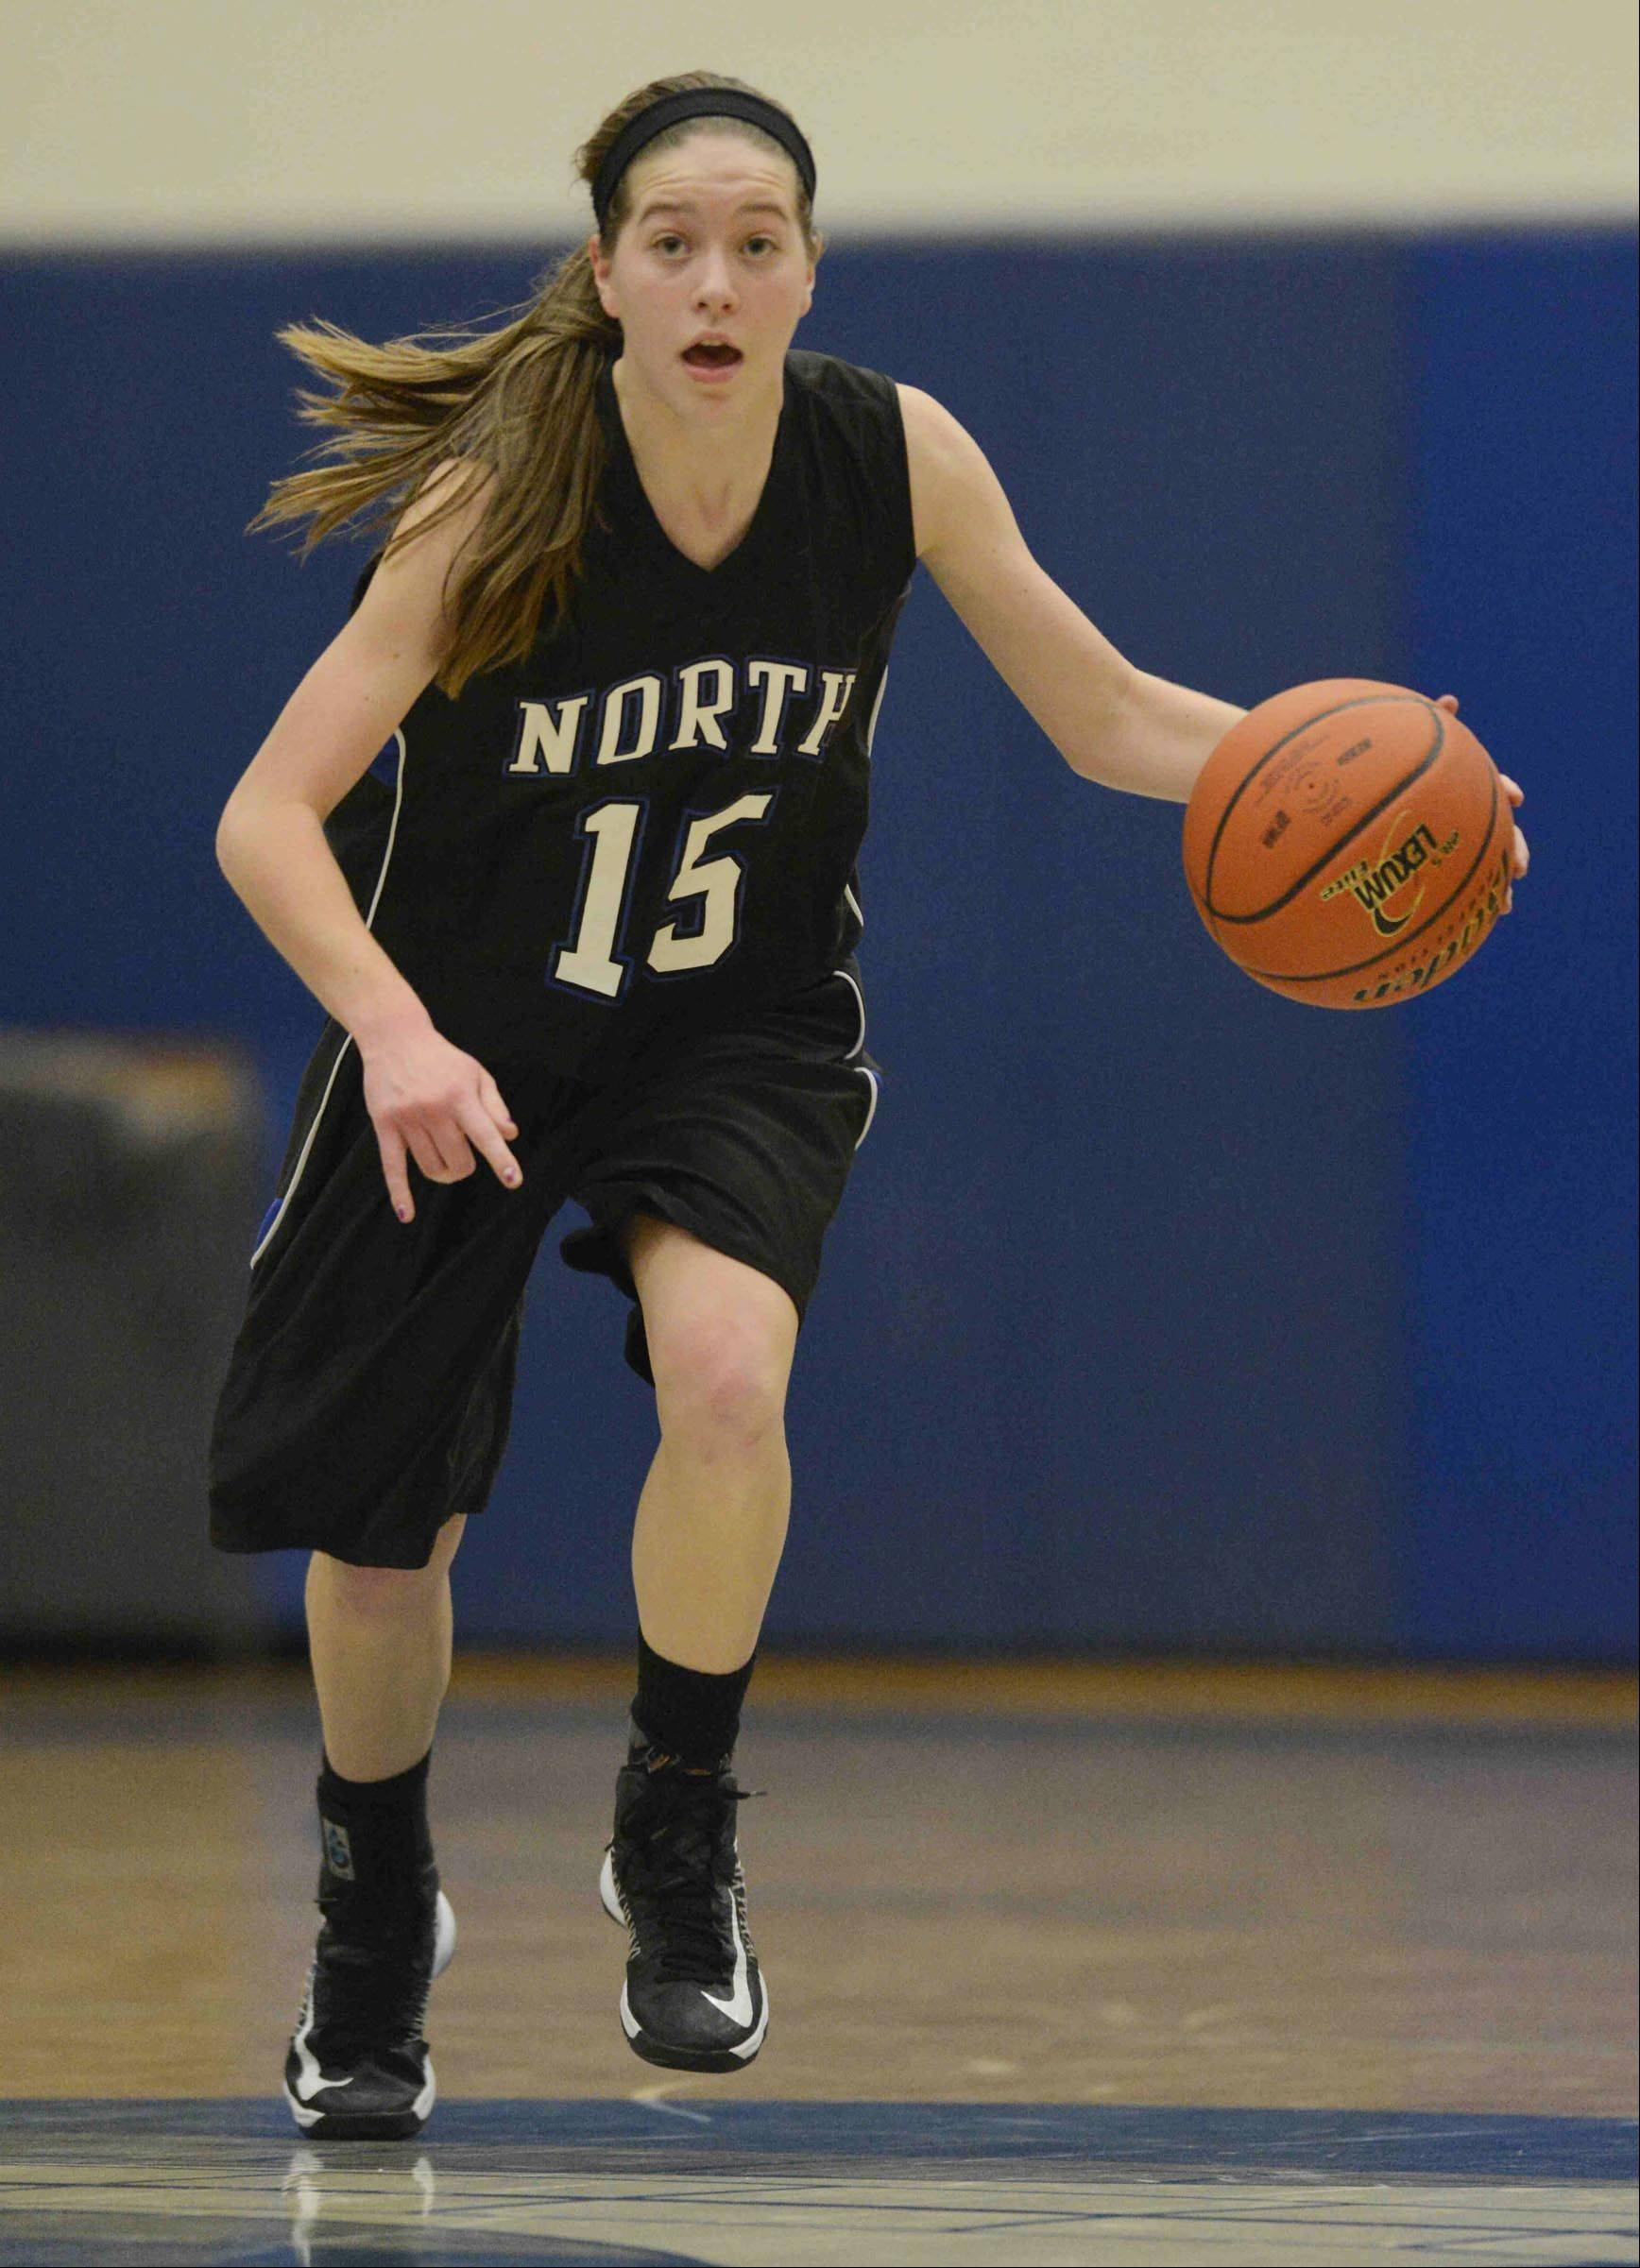 Images from the St. Charles North vs. Burlington Central girls basketball game Tuesday, February 5, 2013.